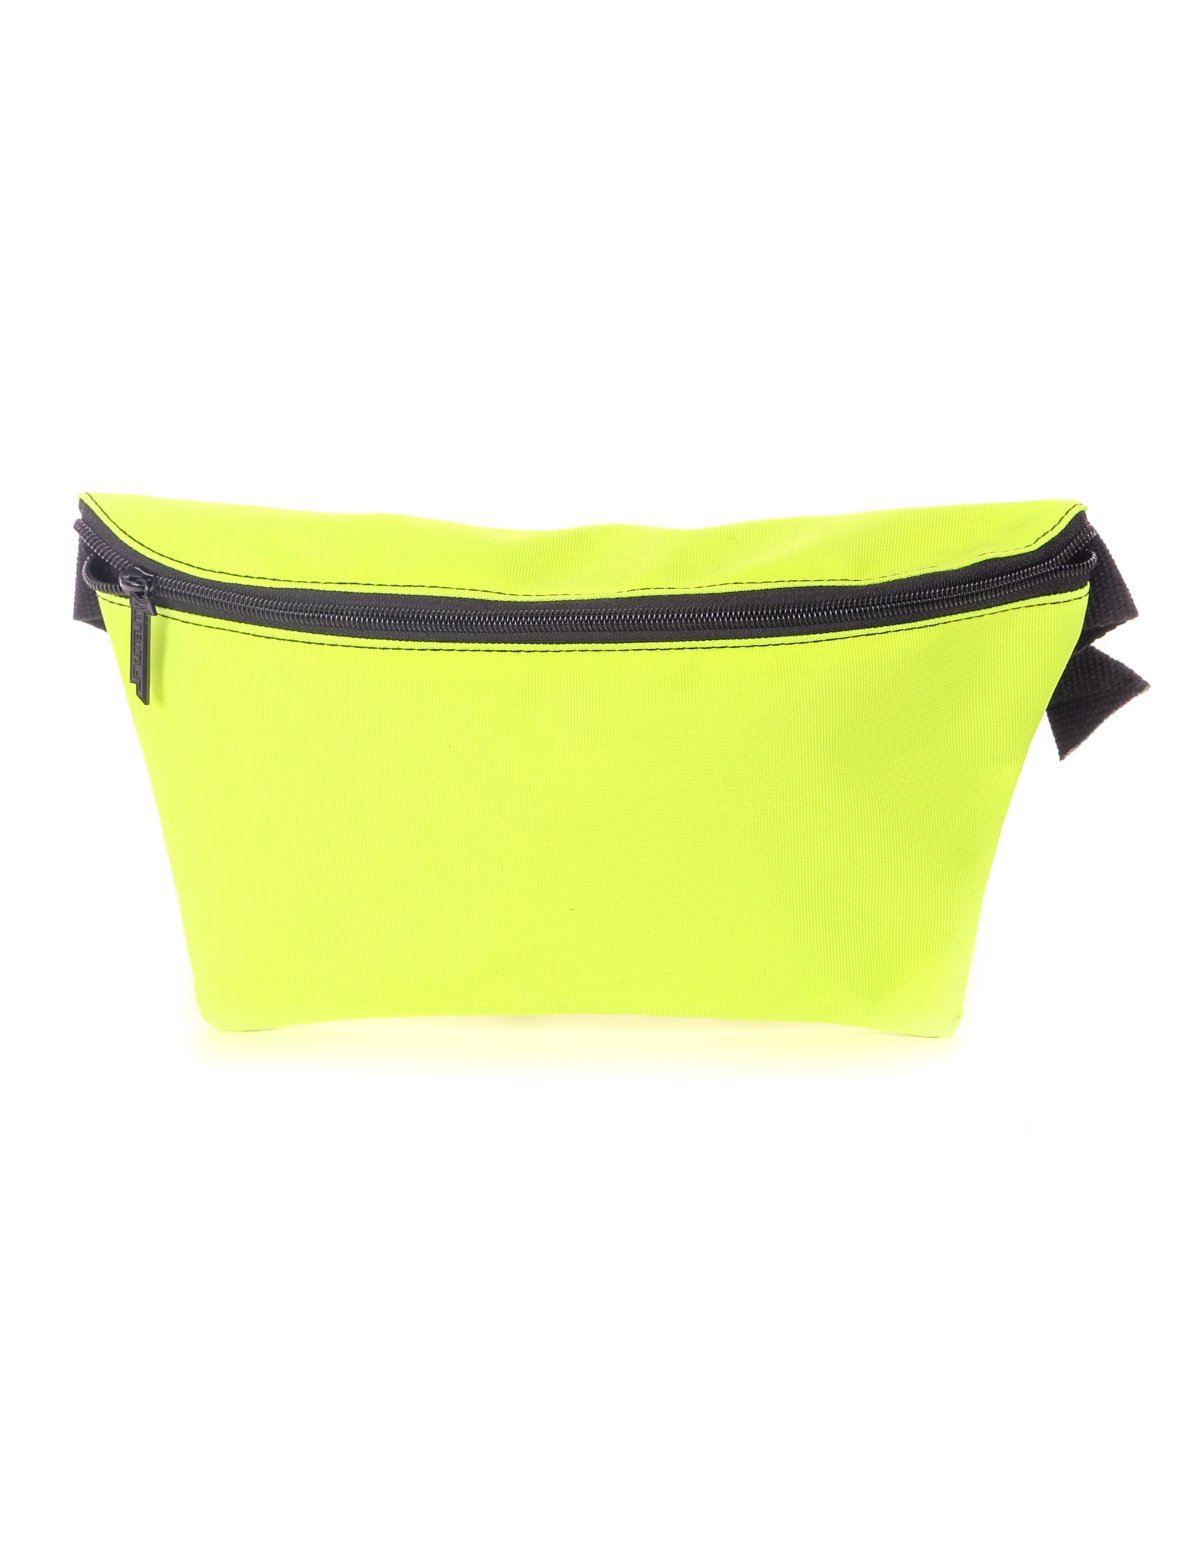 81405: FYDELITY- XL Ultra-Slim Fanny Pack: DAILY Neon Green